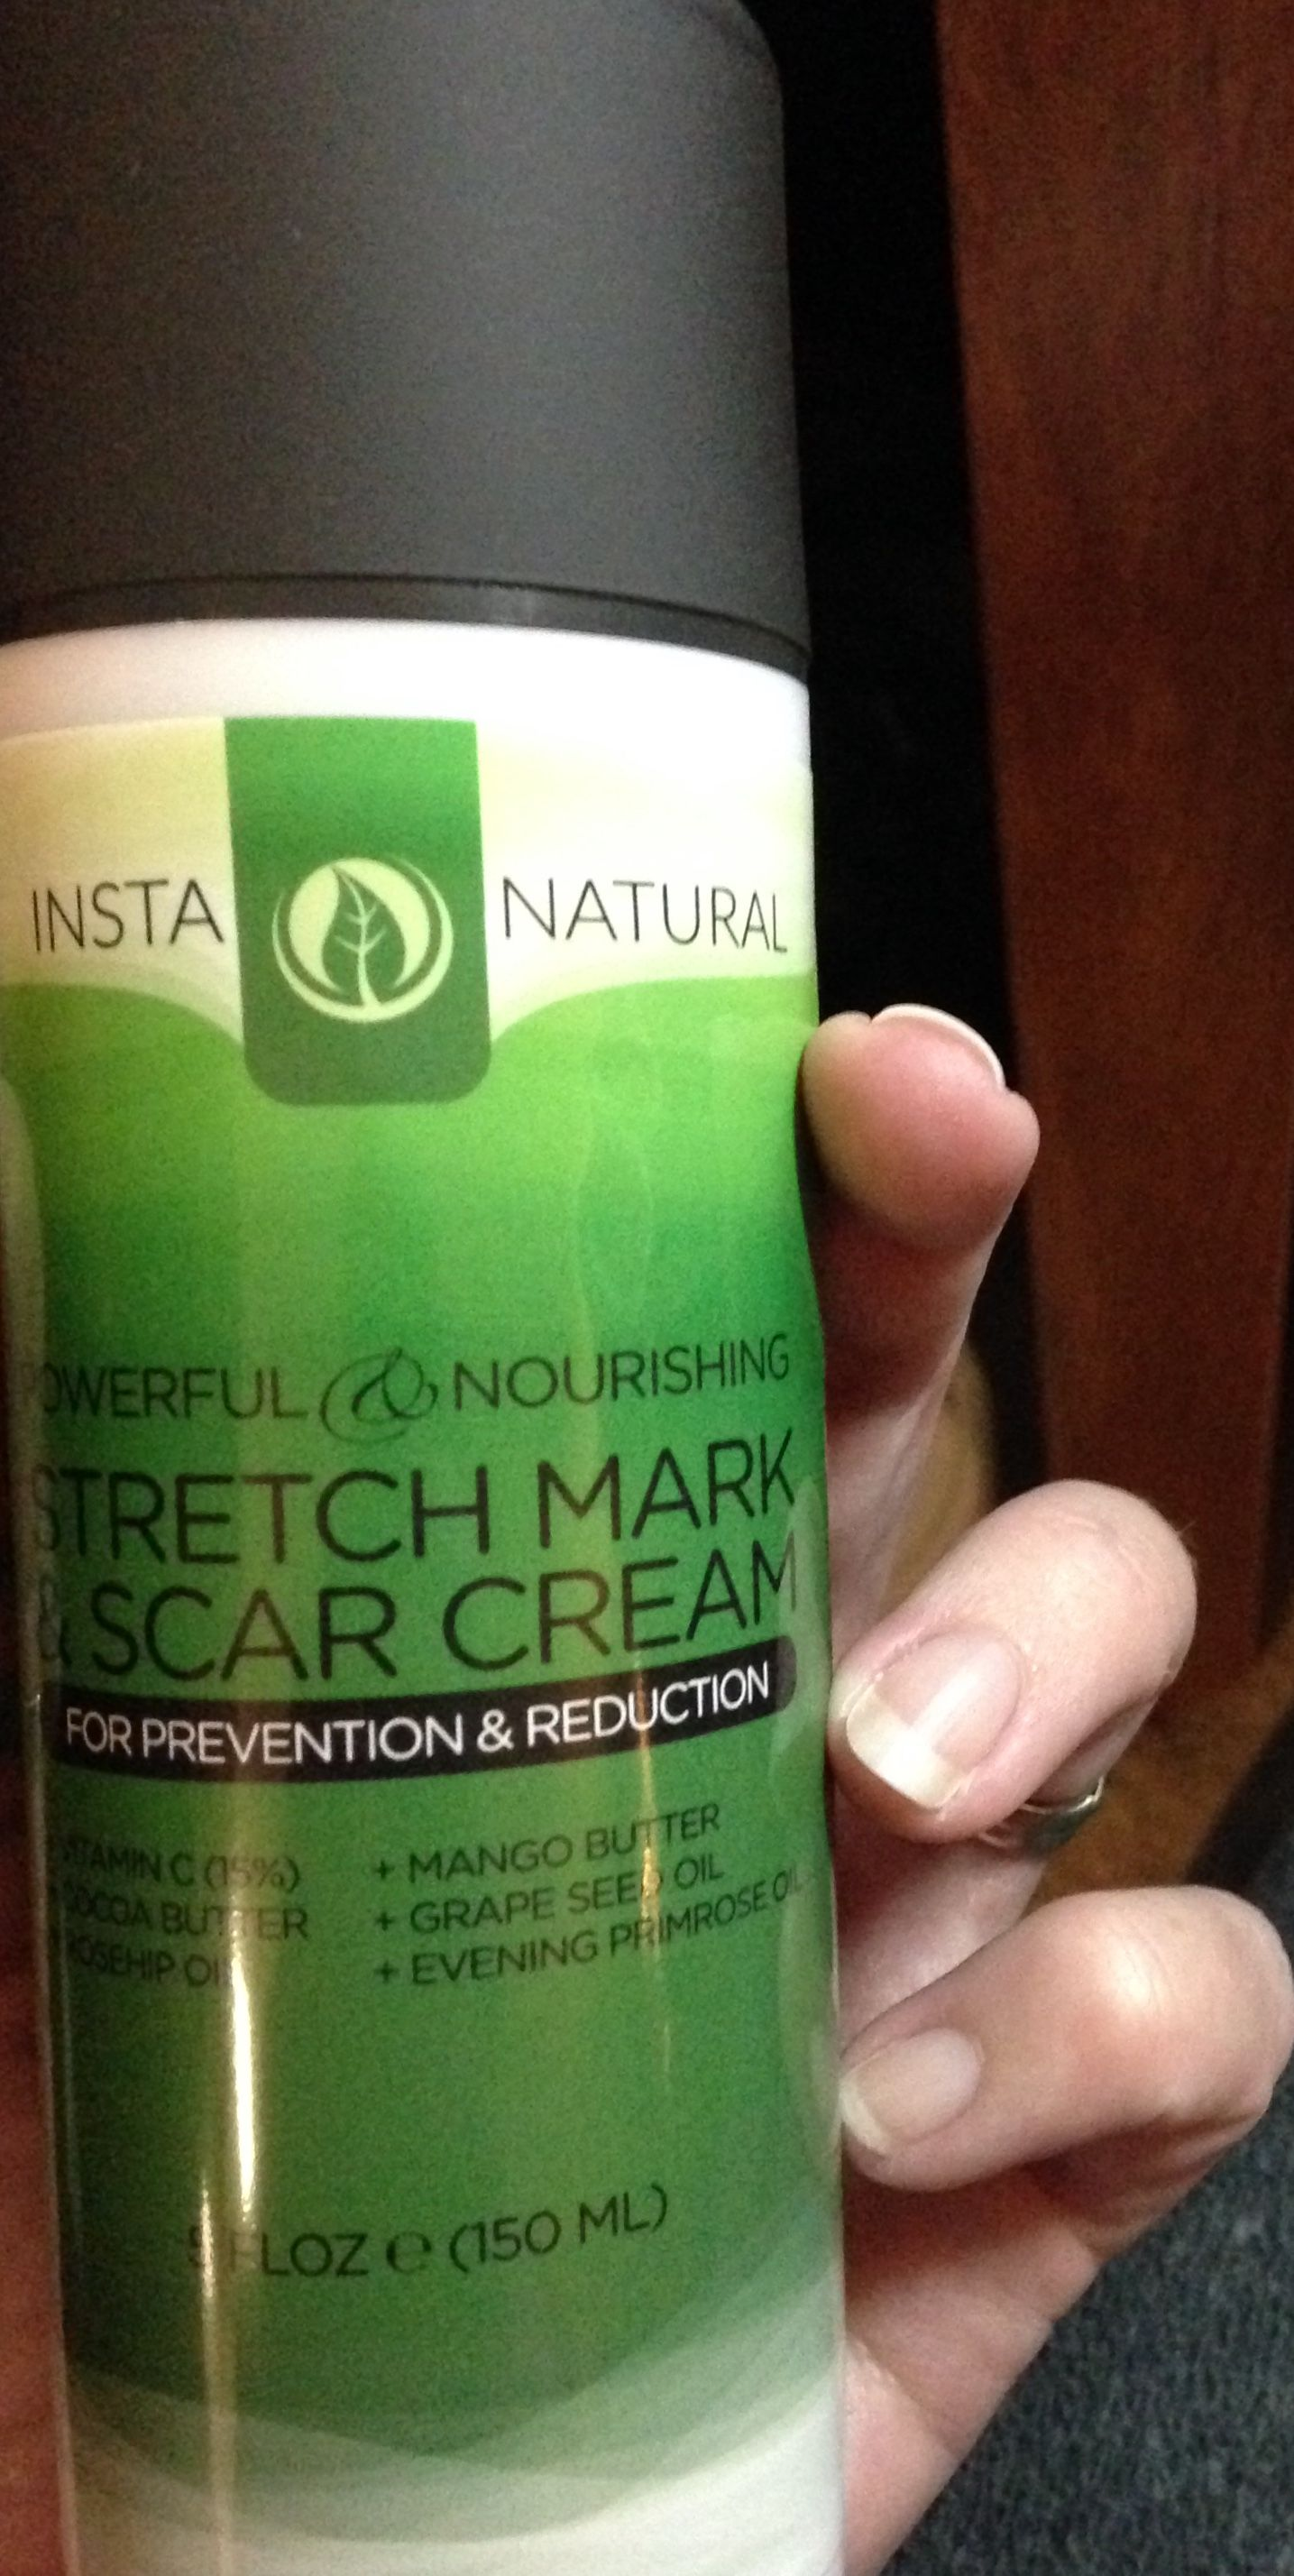 Stretch Mark and Scar Cream from InstaNatural   #instanatural on Amazon here: http://www.amazon.com/Stretch-Cream--HUGE-Reduces-Prevents/dp/B00O14R17Q/ref=sr_1_1?ie=UTF8&qid=1416374170&sr=8-1&keywords=instanatural+stretch+mark+and+scar+cream